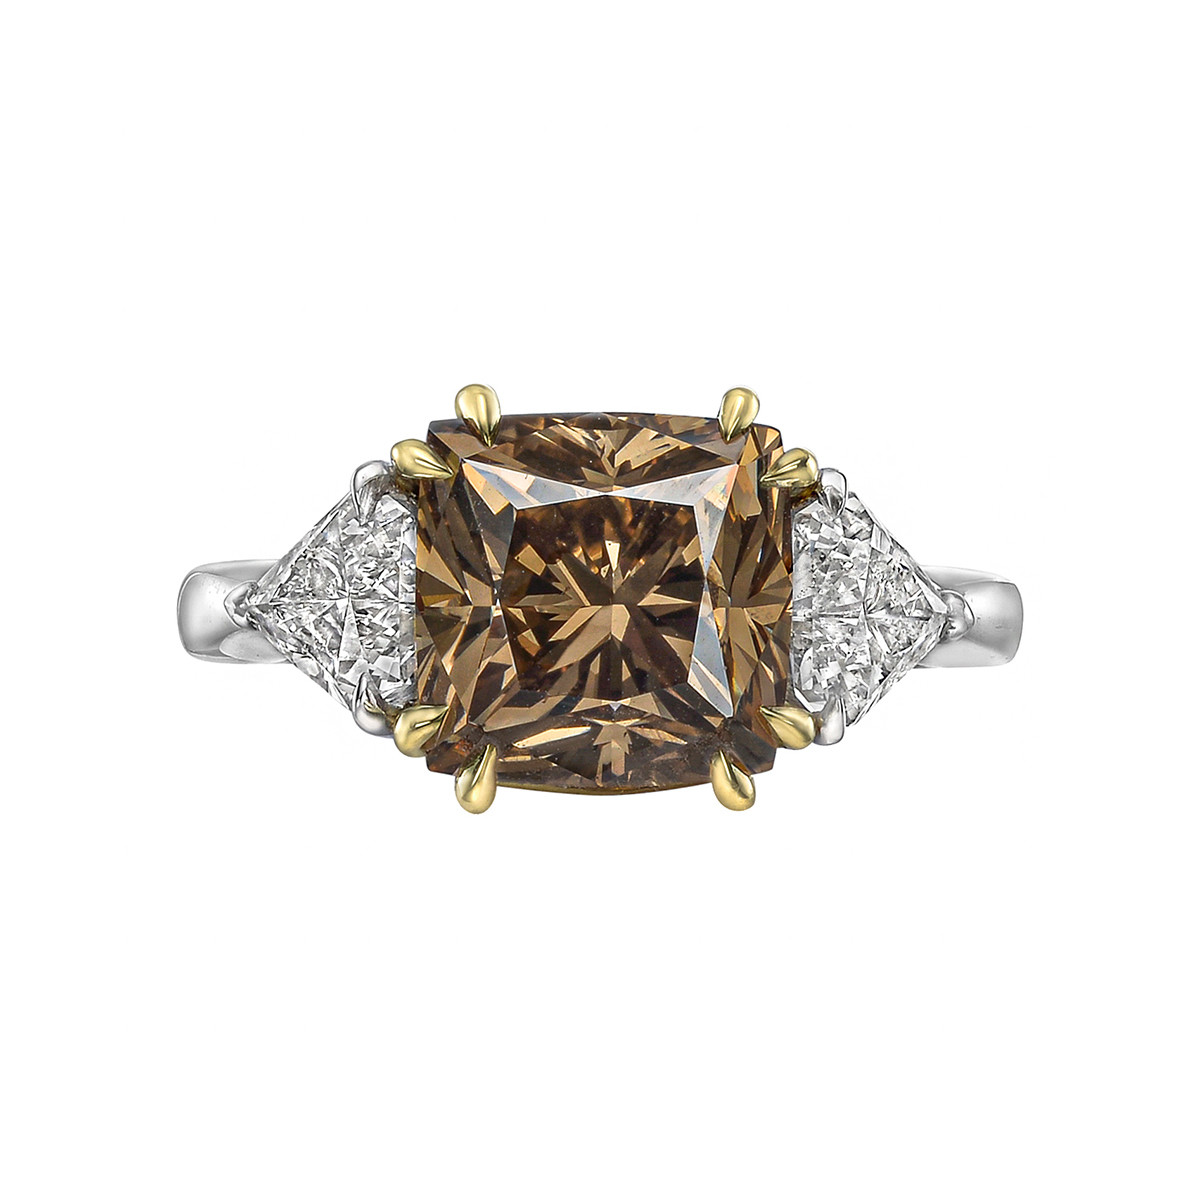 4.93ct Fancy Brown & White Diamond Ring